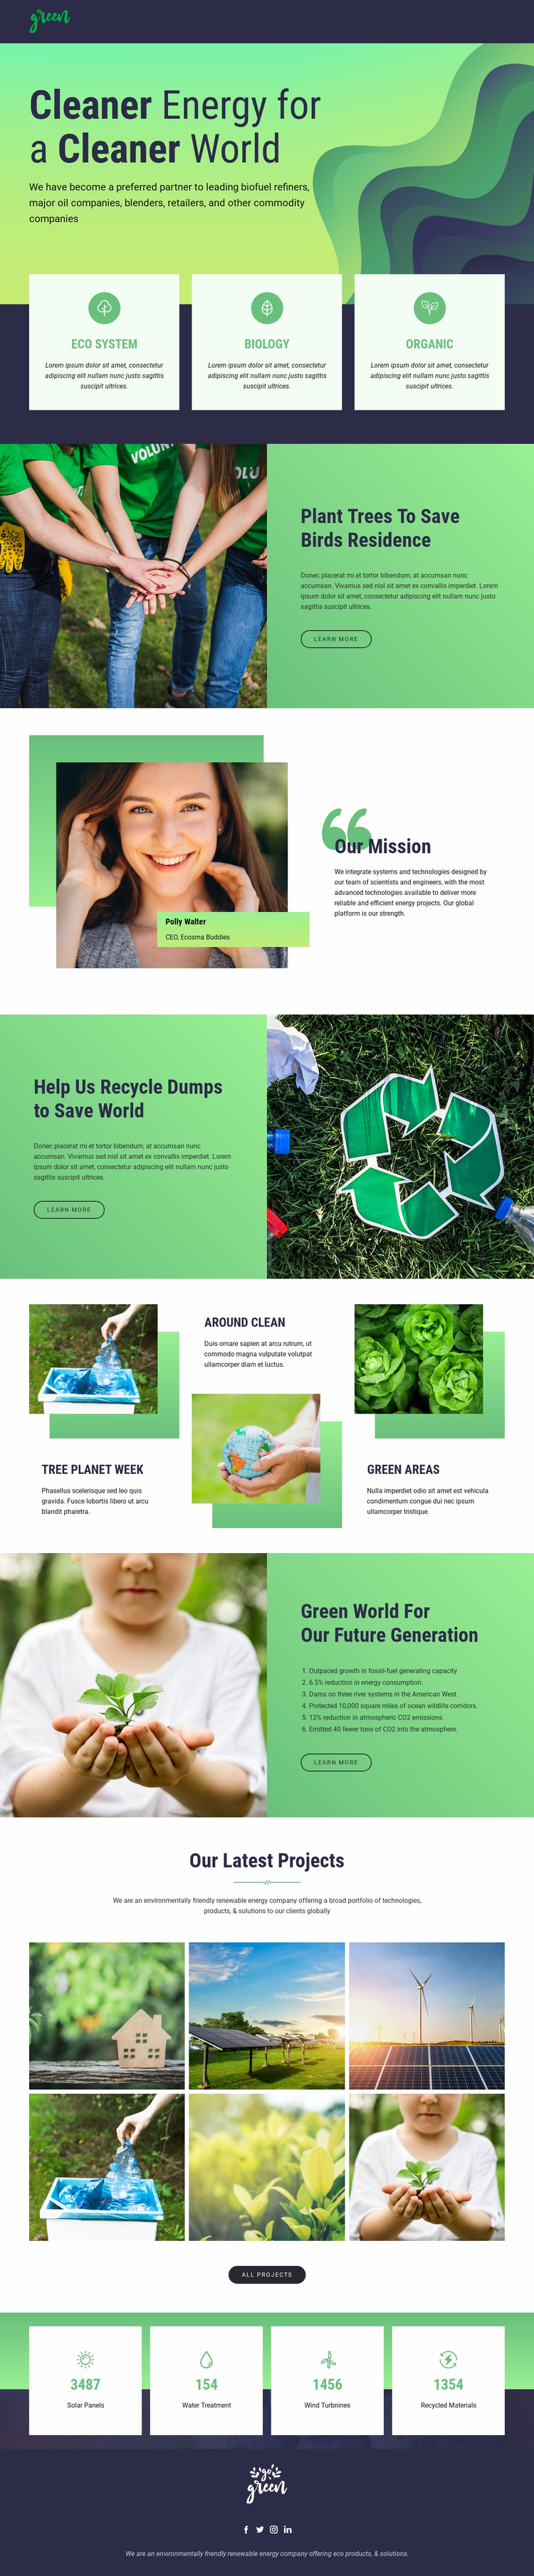 Clean energy to save nature Website Design